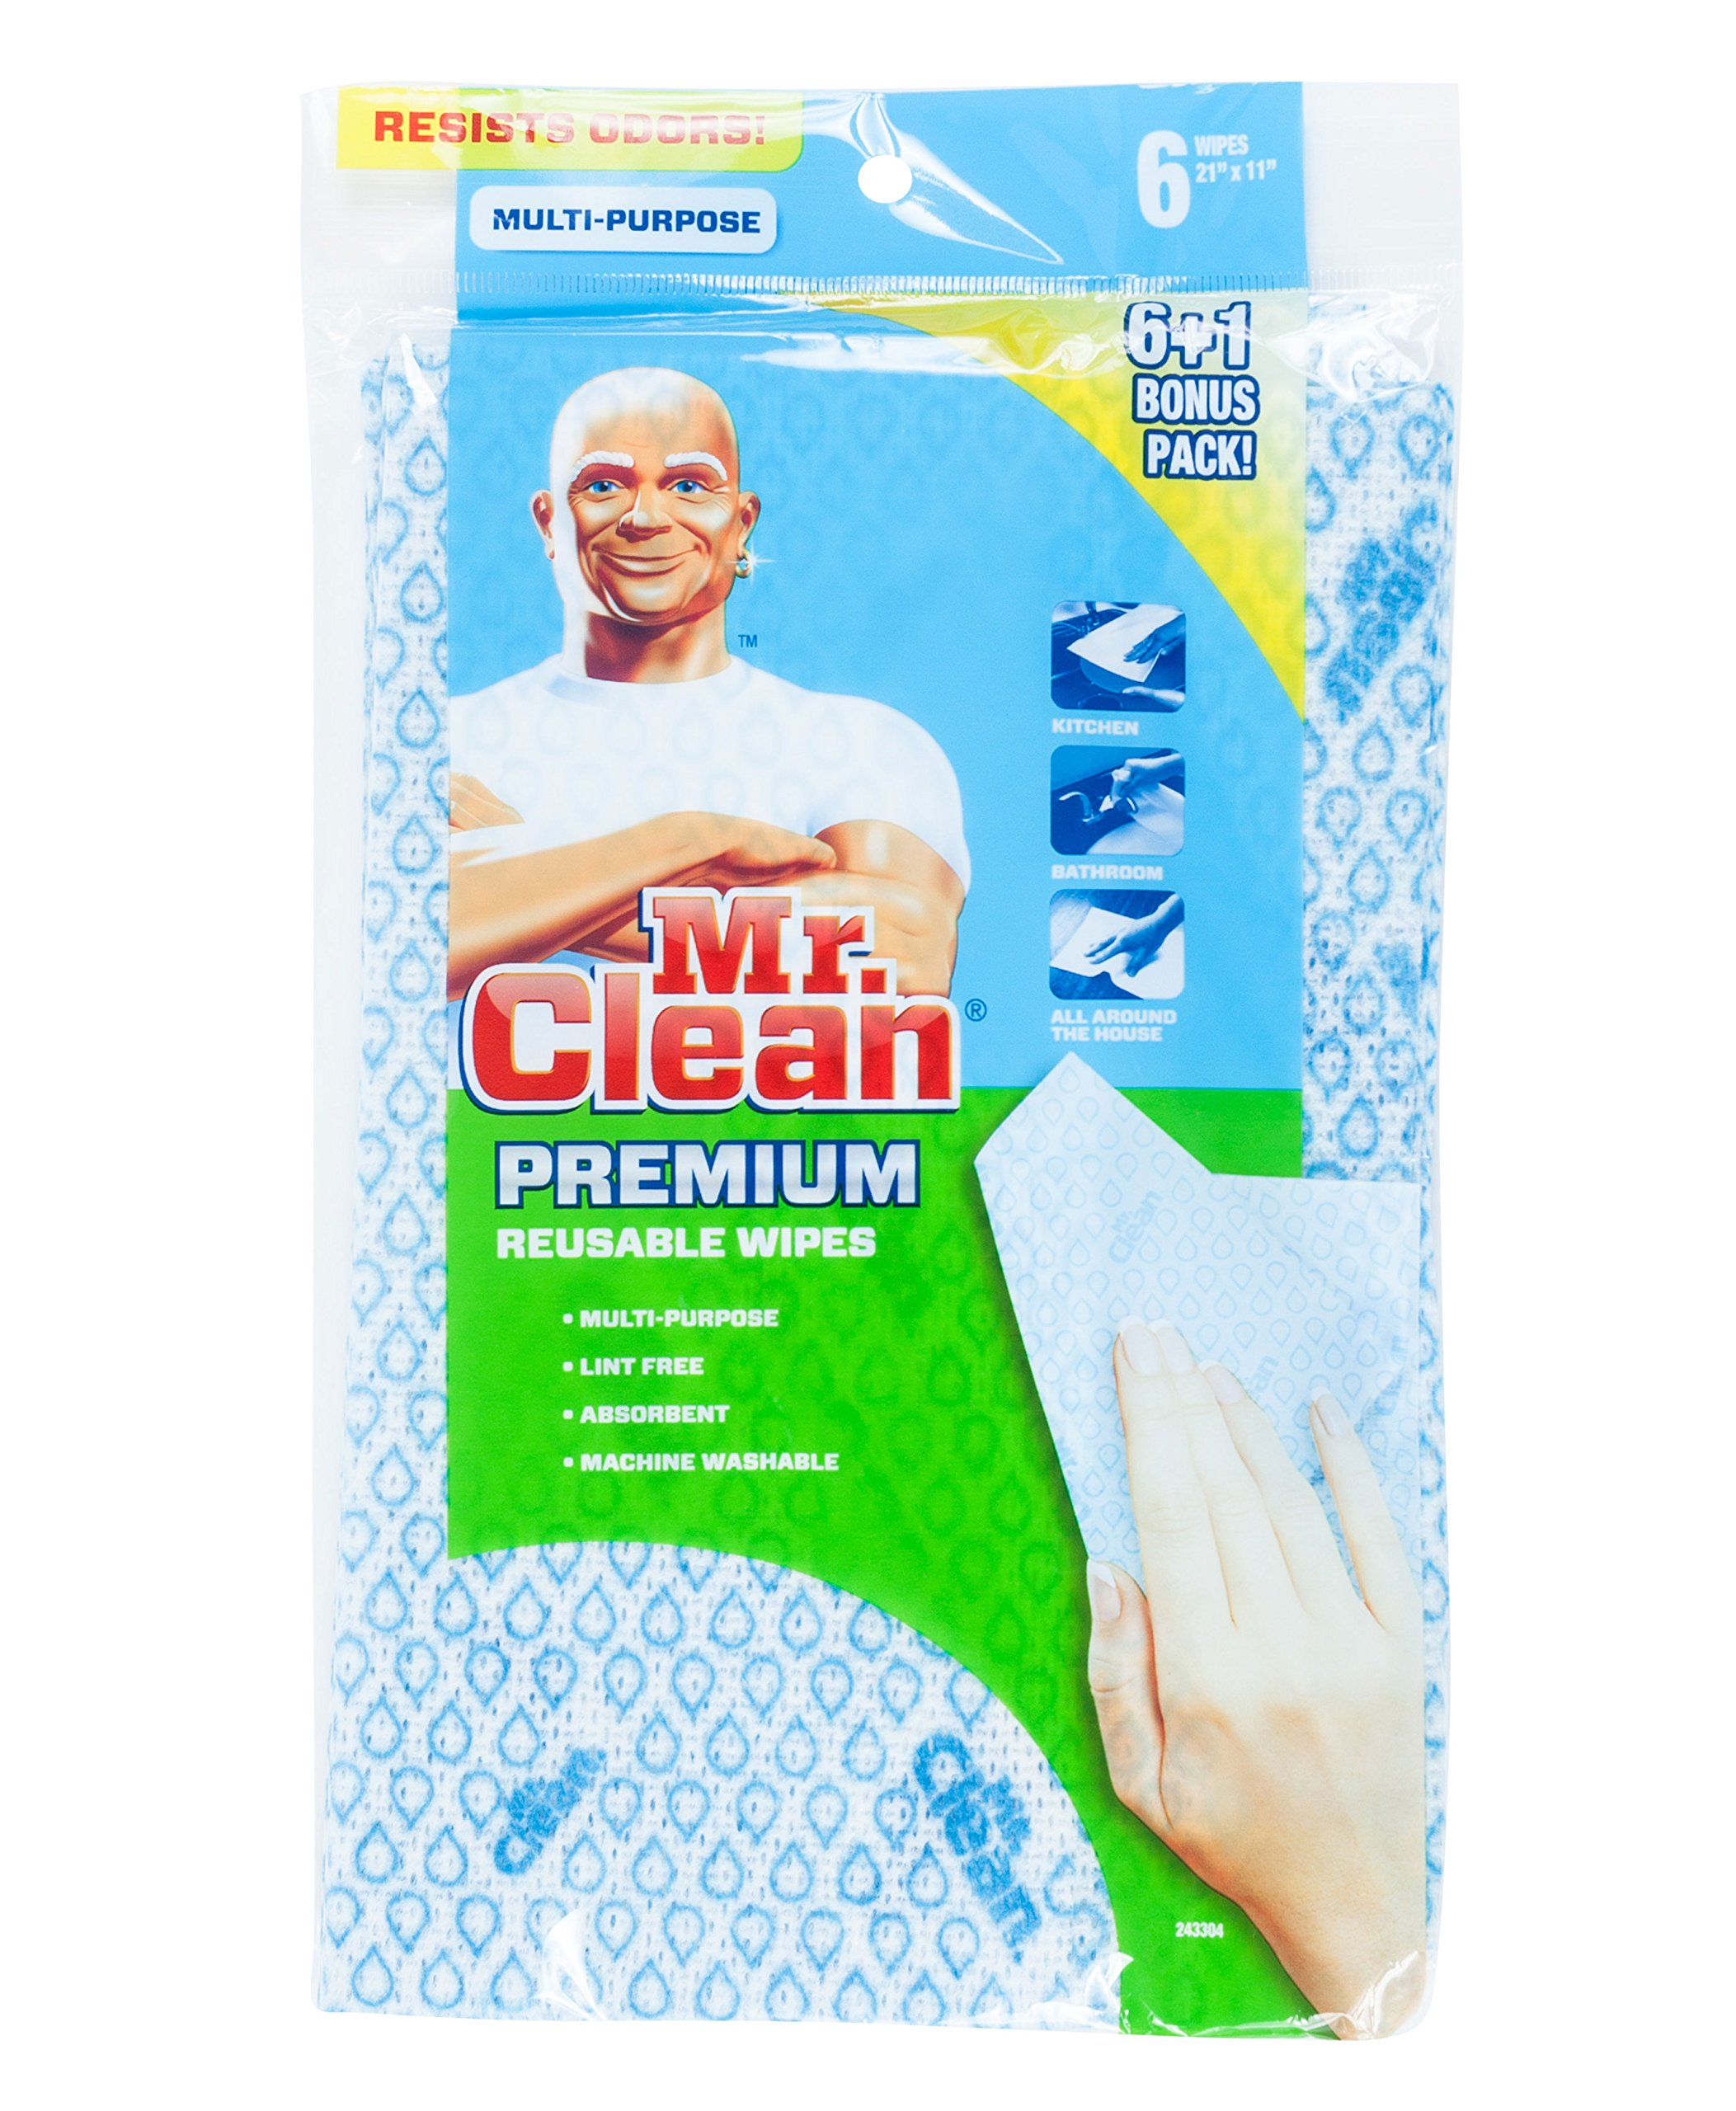 Mr. Clean Premium Reusable Wipes, Set of 7, 48-pack by Mr. Clean